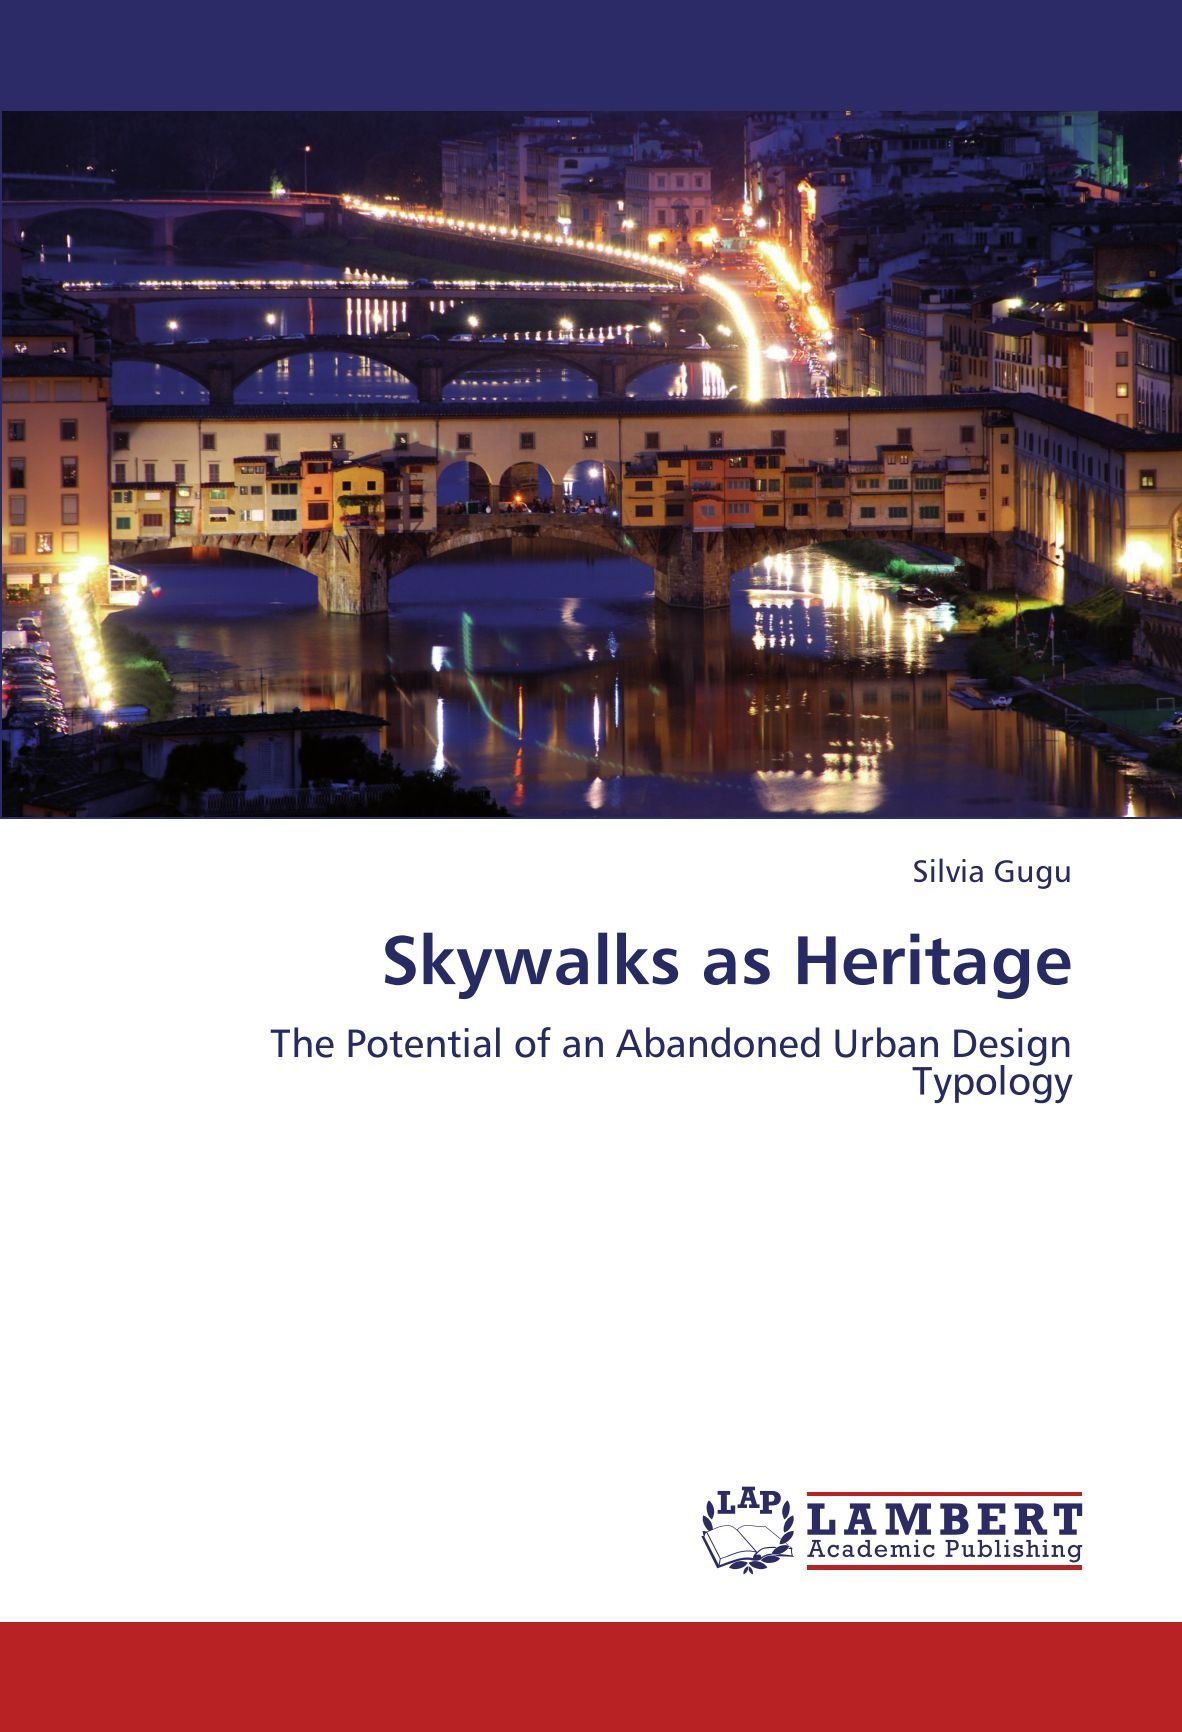 Skywalks as Heritage: The Potential of an Abandoned Urban Design Typology ebook